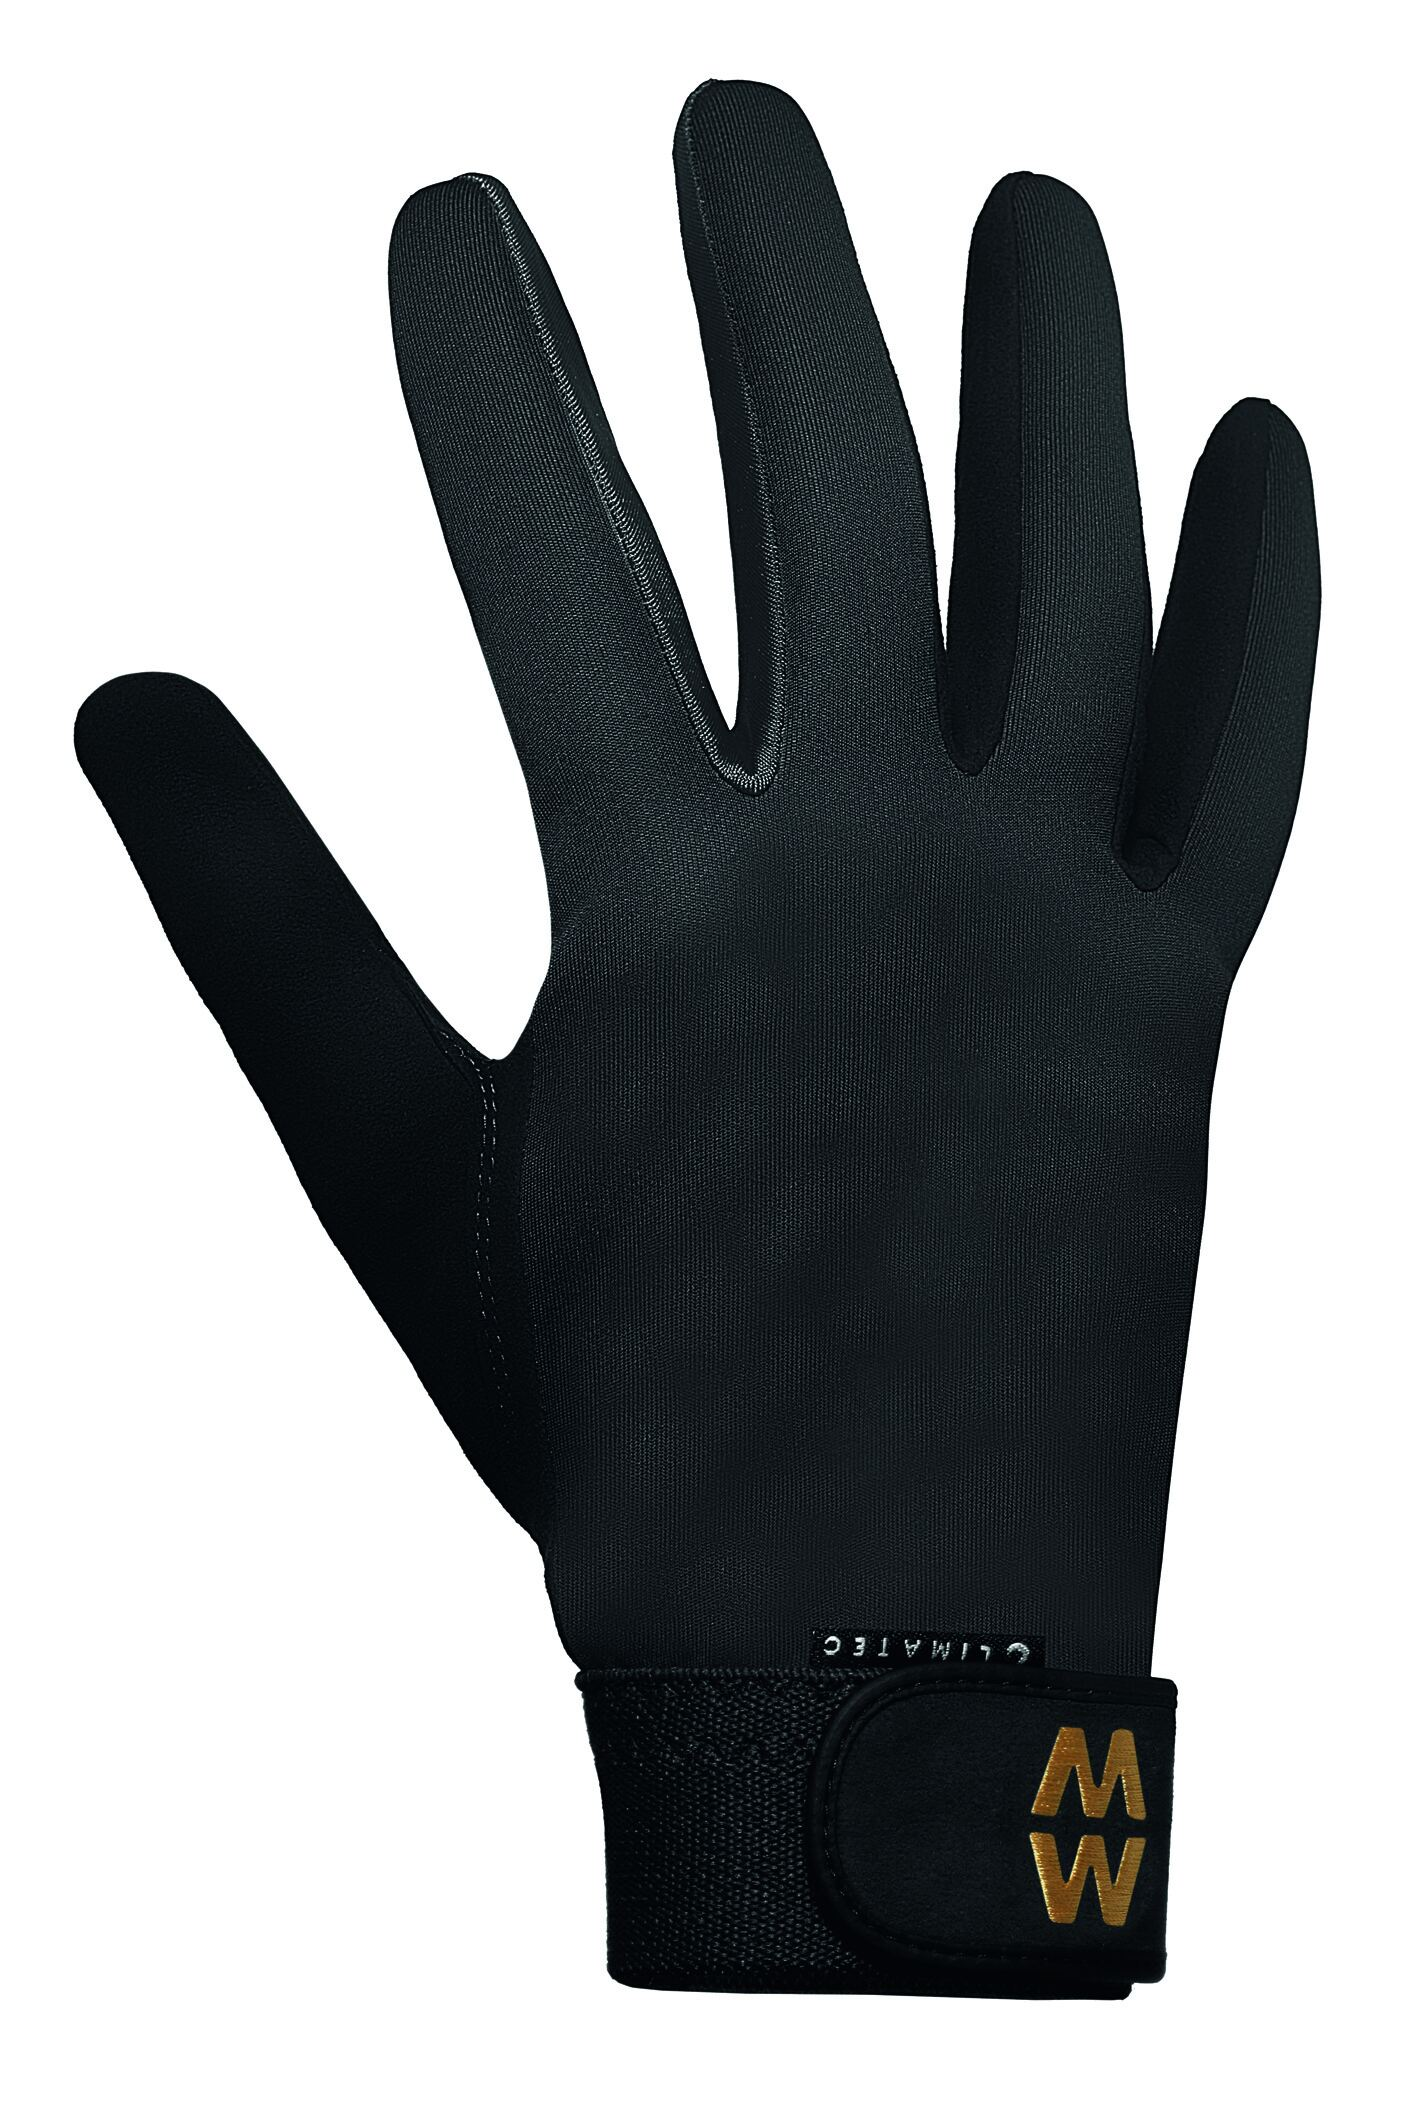 Image of 1 Pair Black MacWet Long Climatec Sports Gloves Unisex 7 Unisex - Macwet